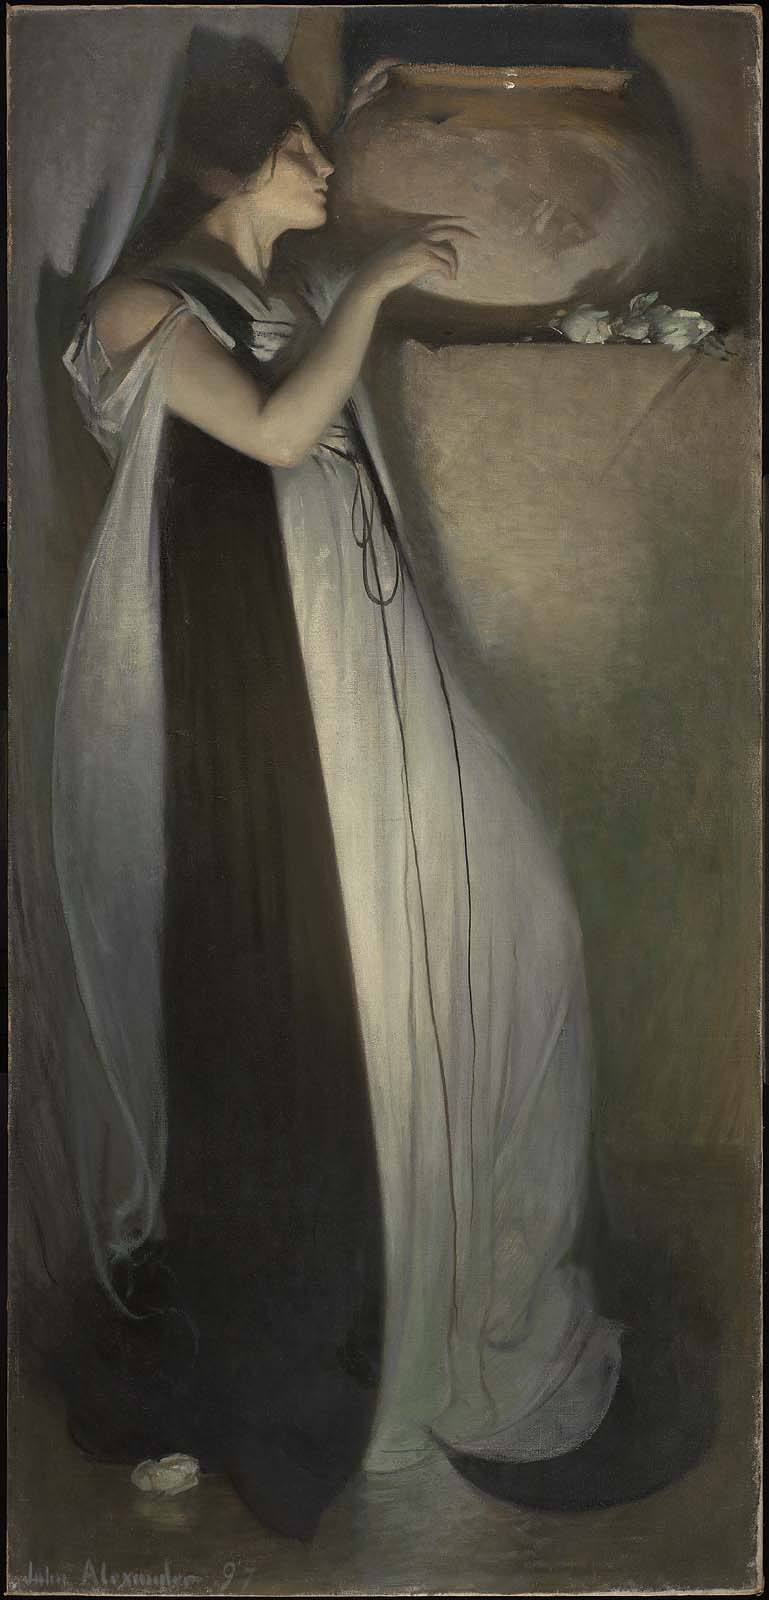 Isabella and the Pot of Basil by John White Alexander